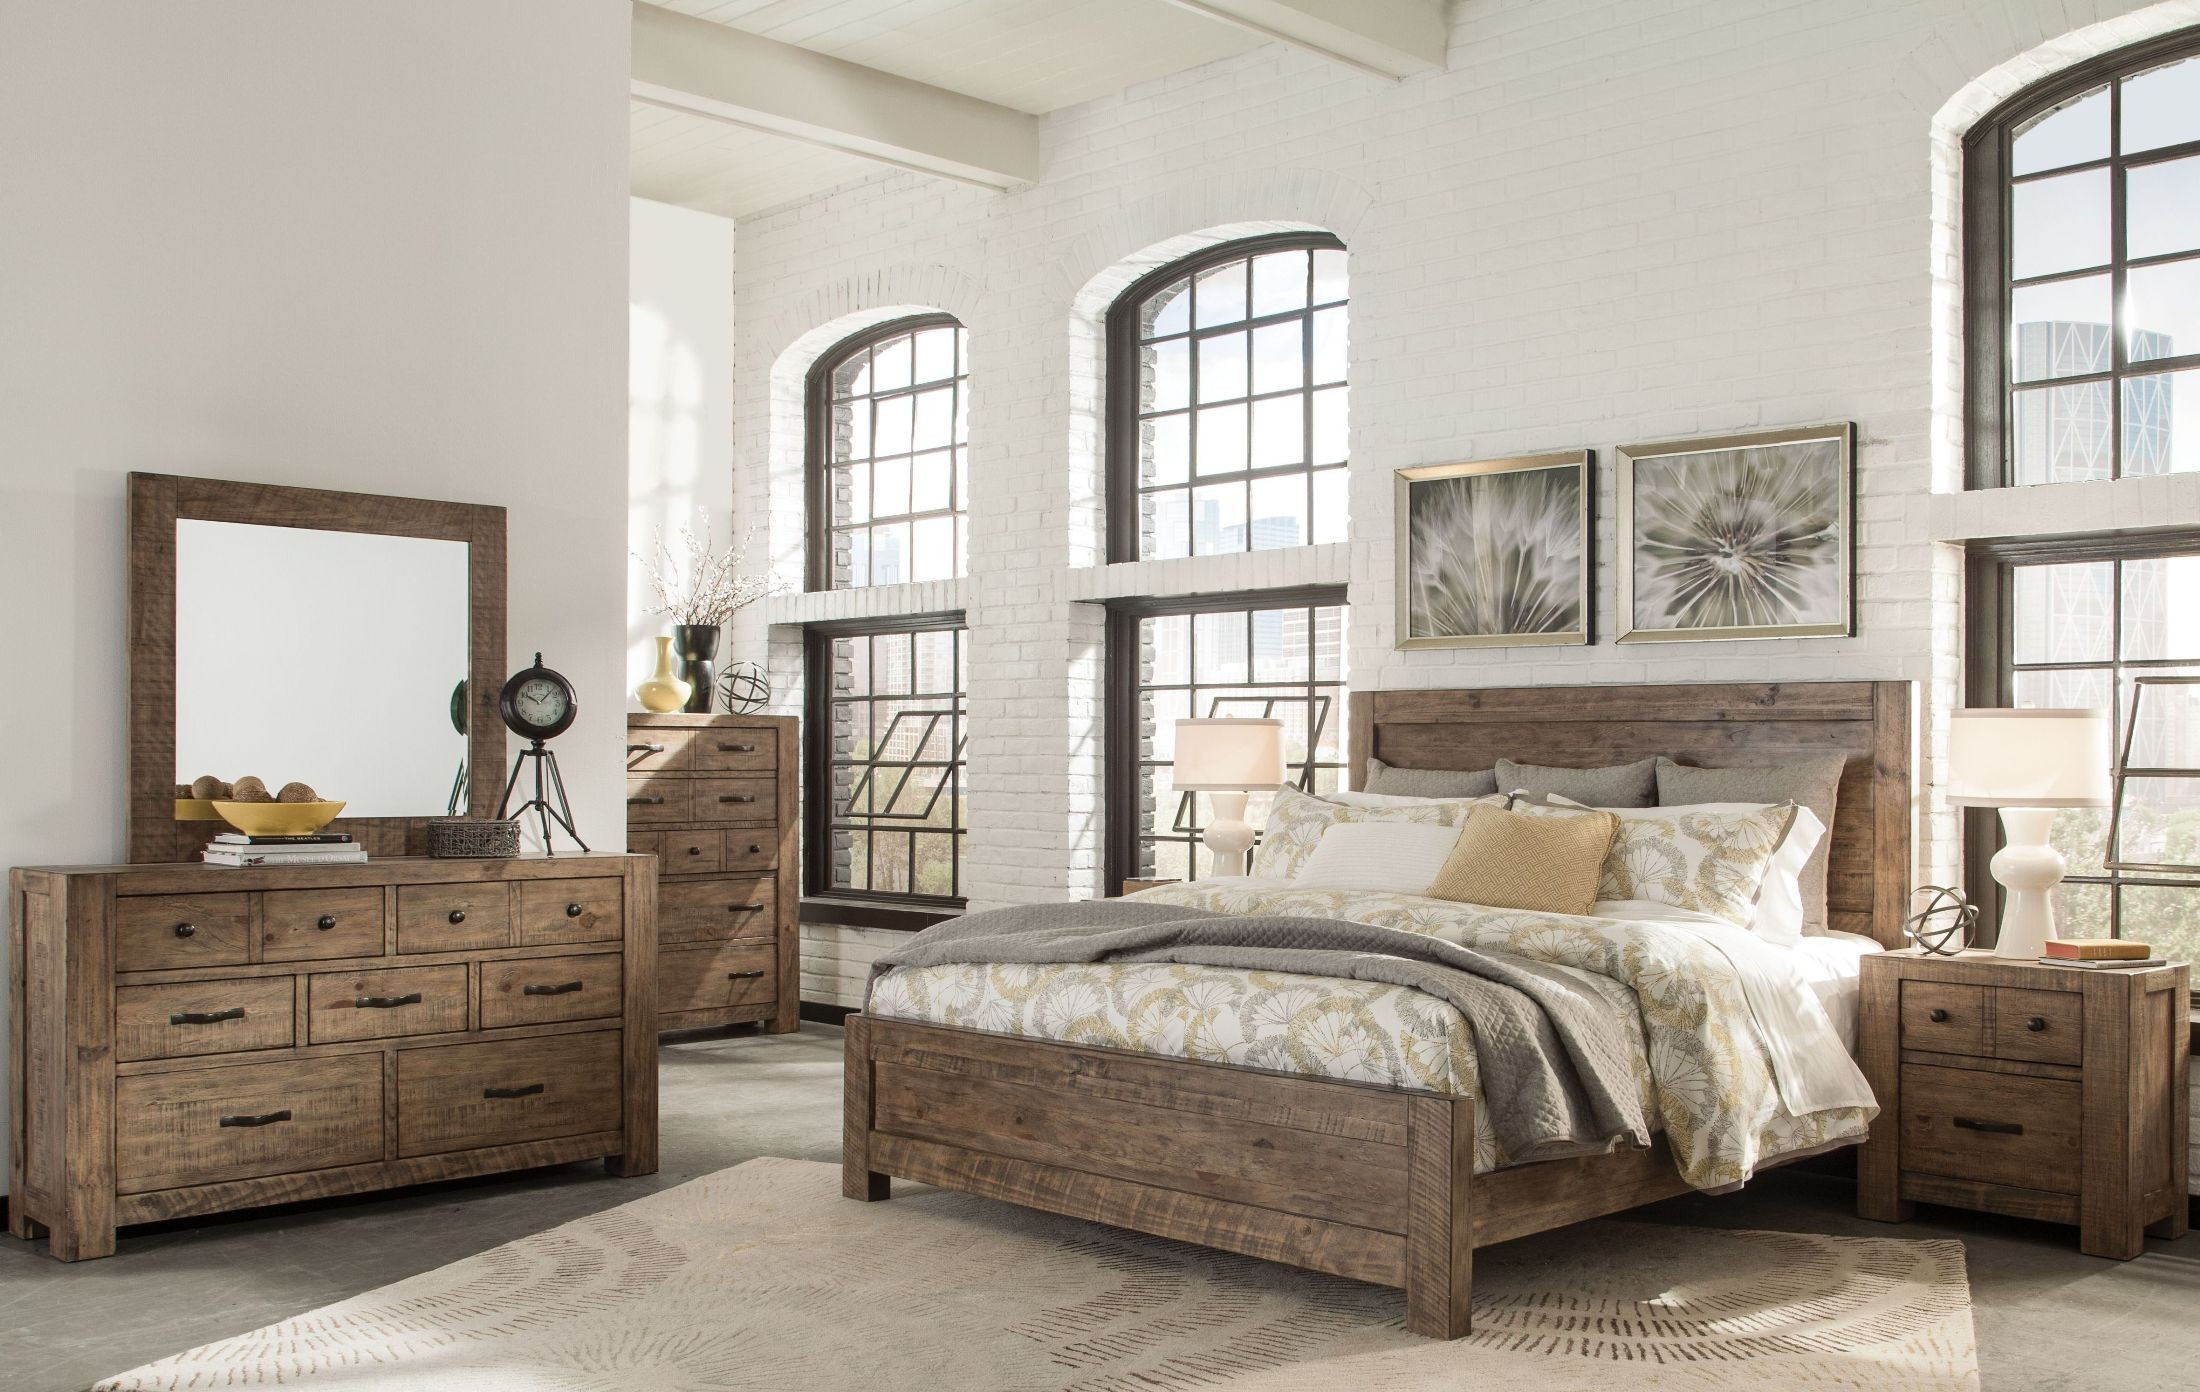 Griffith Weathered Toffee Panel Bedroom Set from Magnussen Home